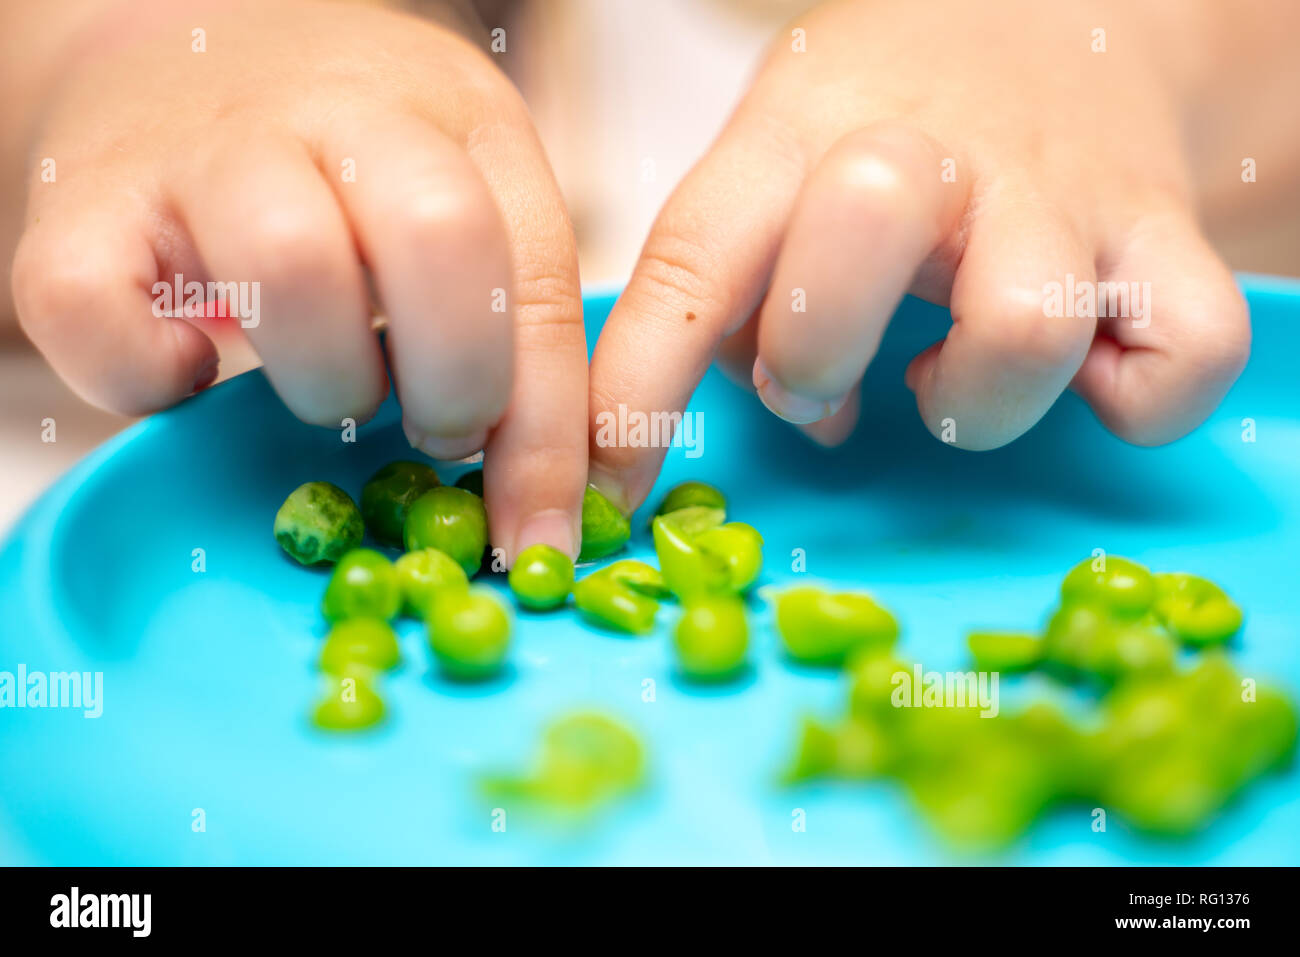 Young child's hands picking up, playing with and eating peas at dinner time from a blue plate - Stock Image